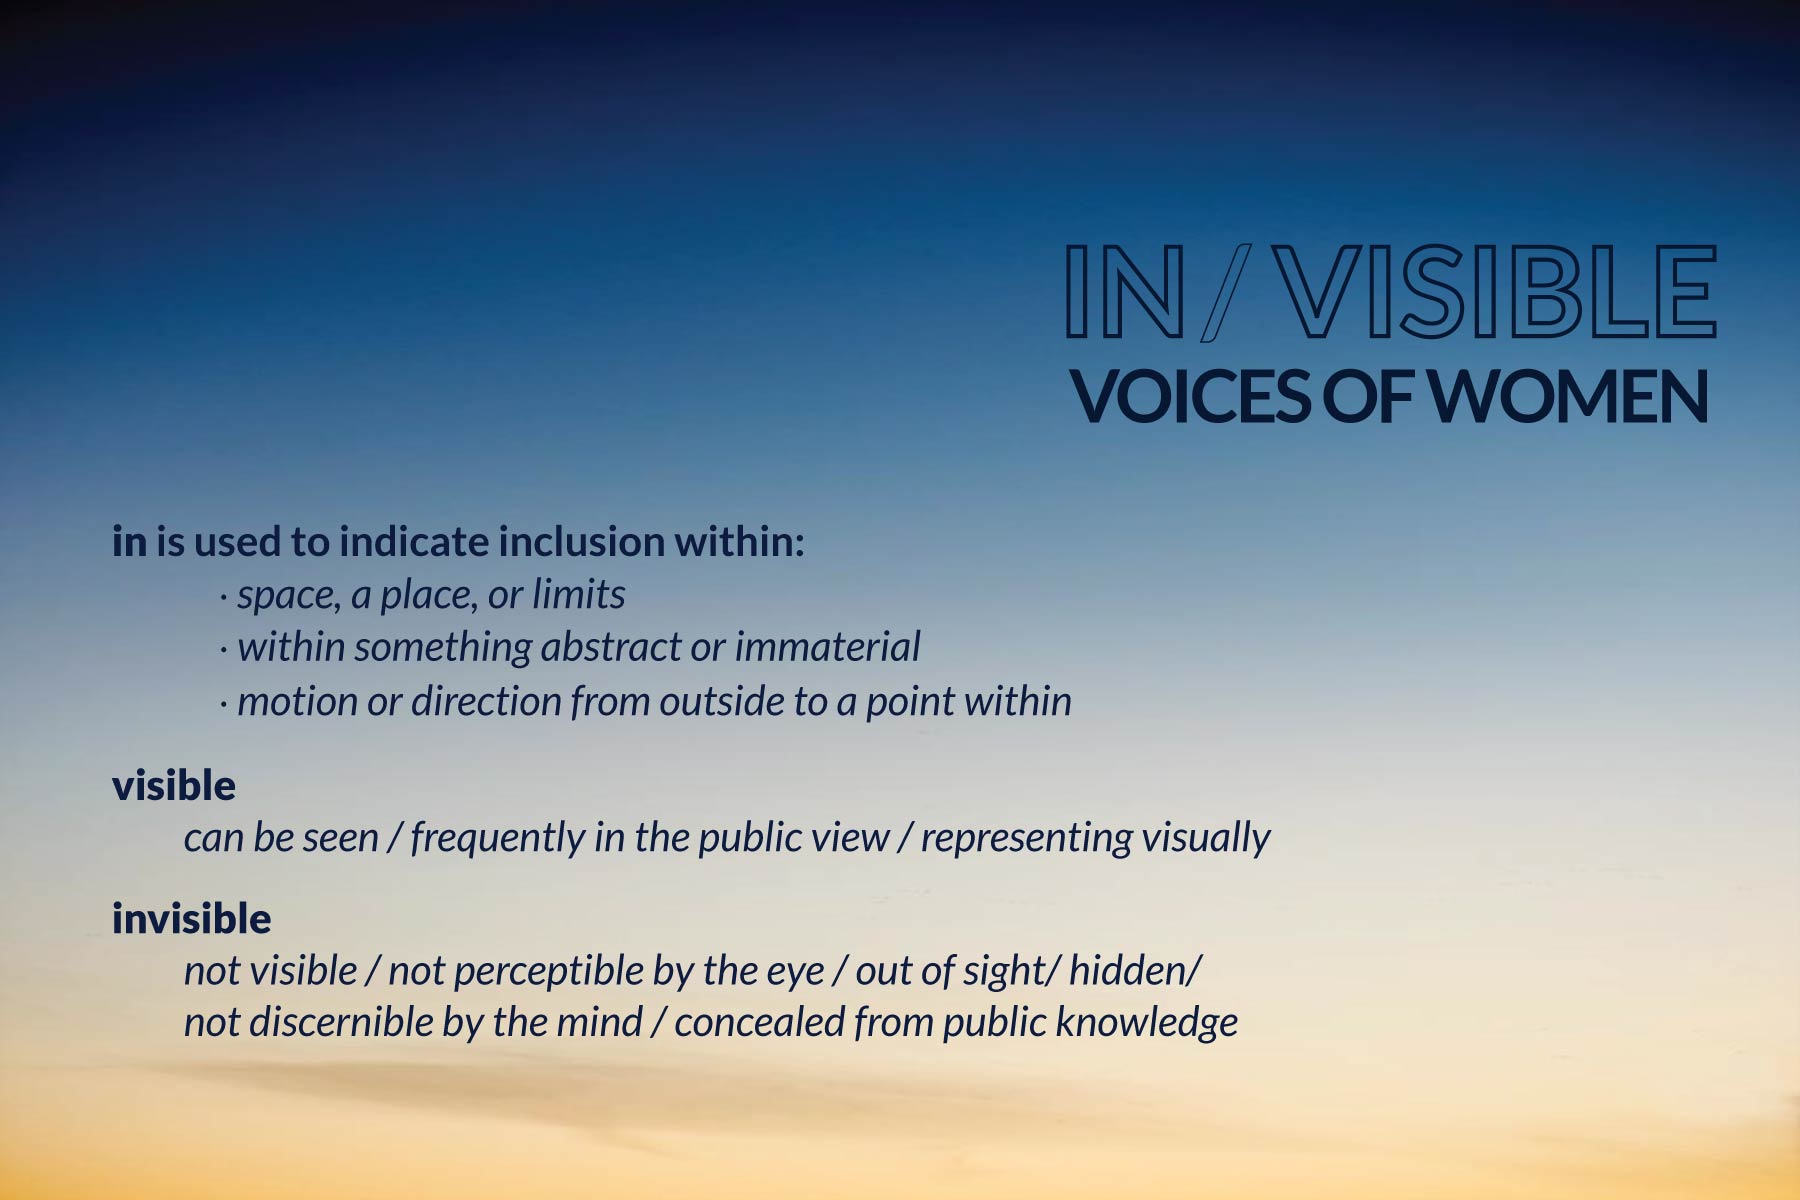 In/Visible Voices of Women